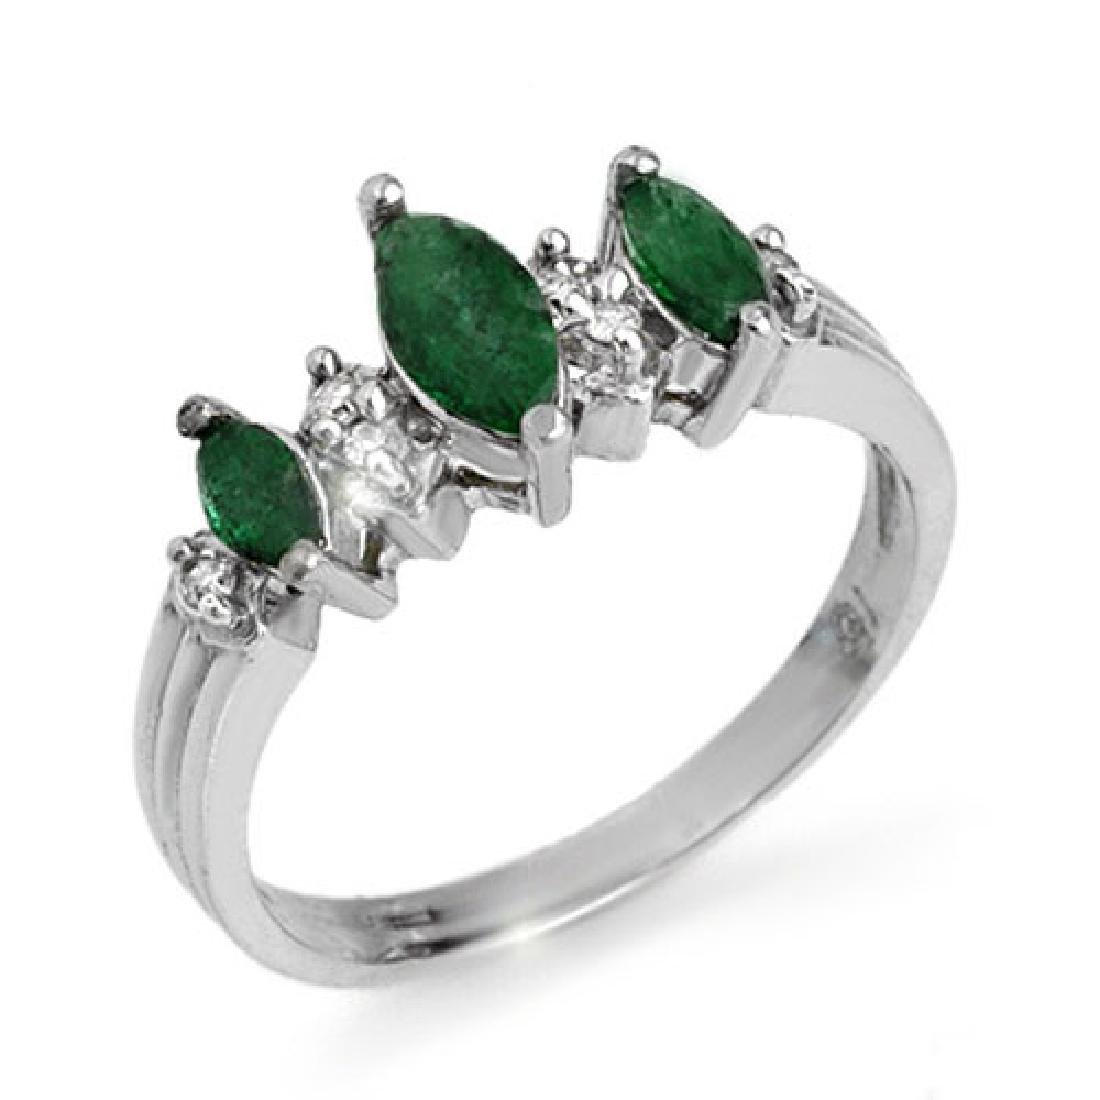 1.0 CTW Emerald & Diamond Ring 10K White Gold